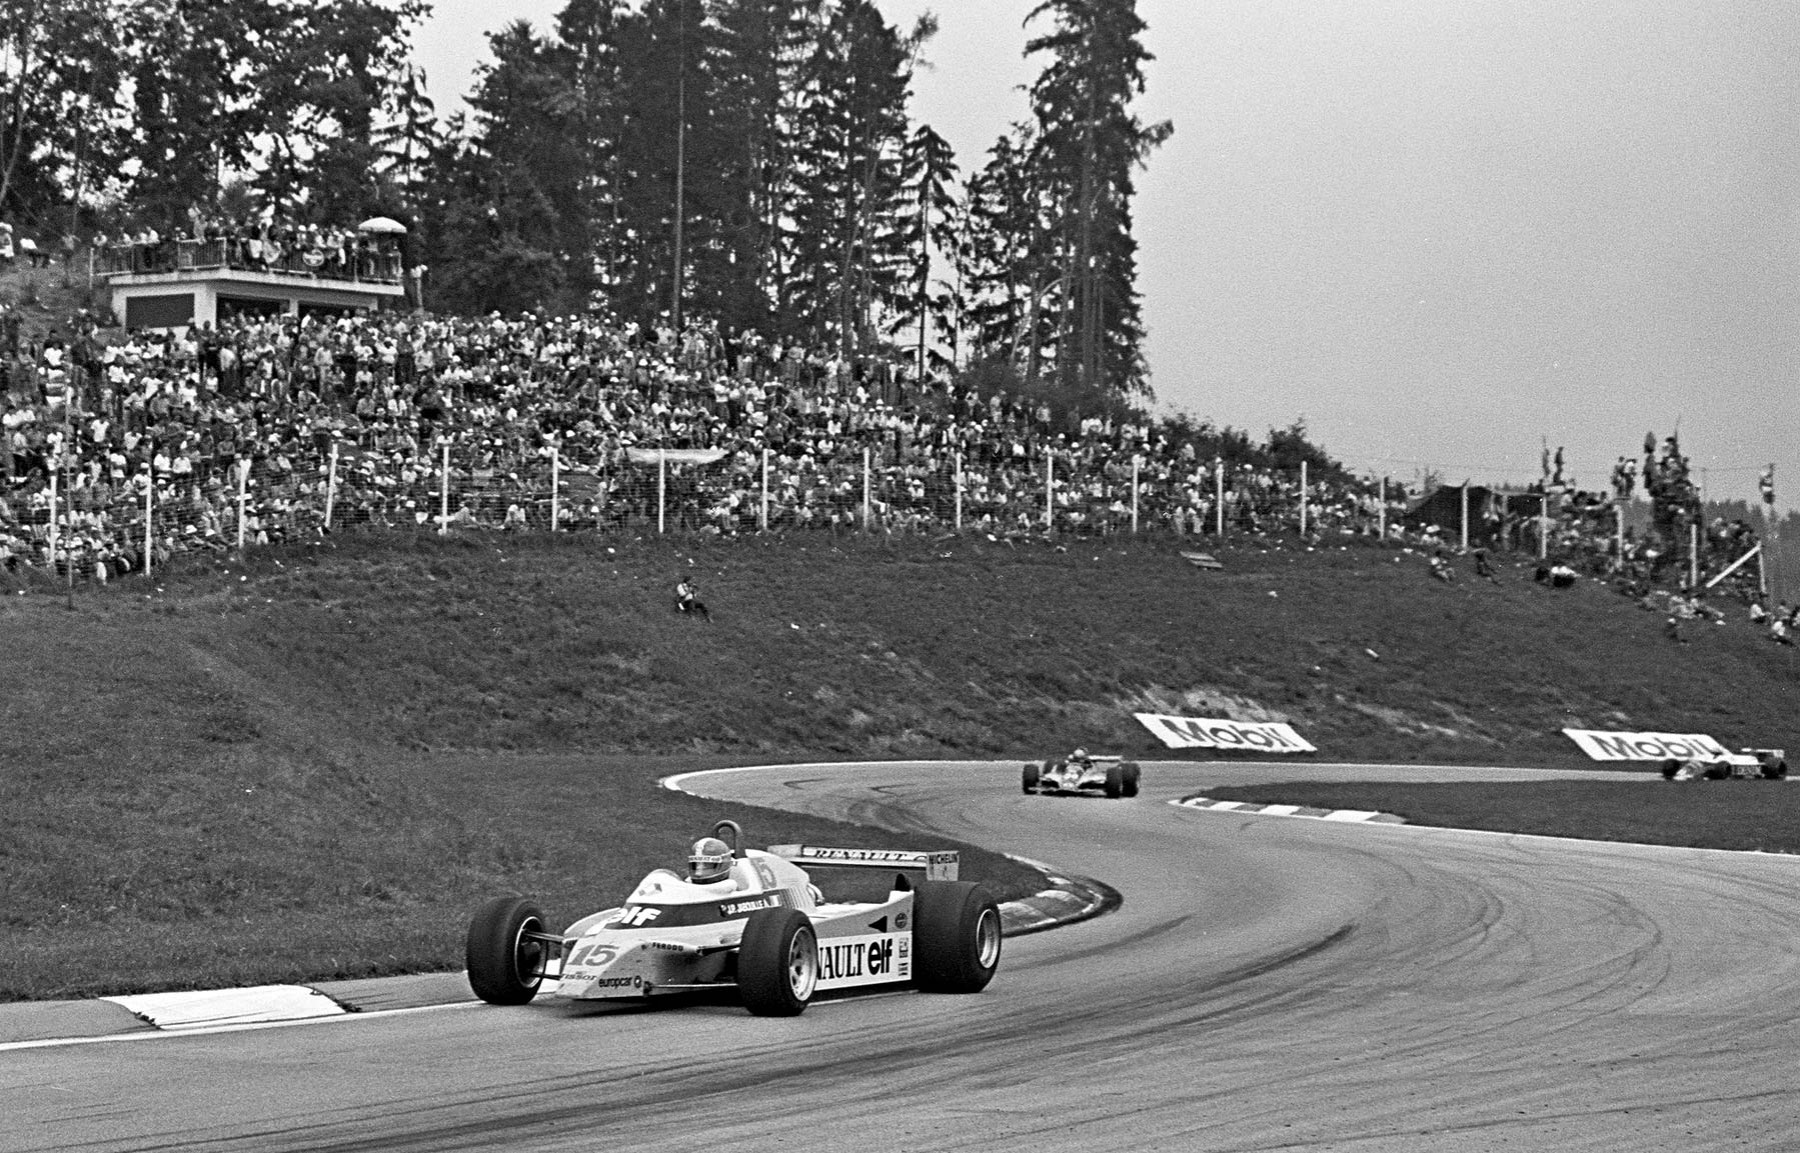 1979 sterreichring jean pierre HD Wallpaper